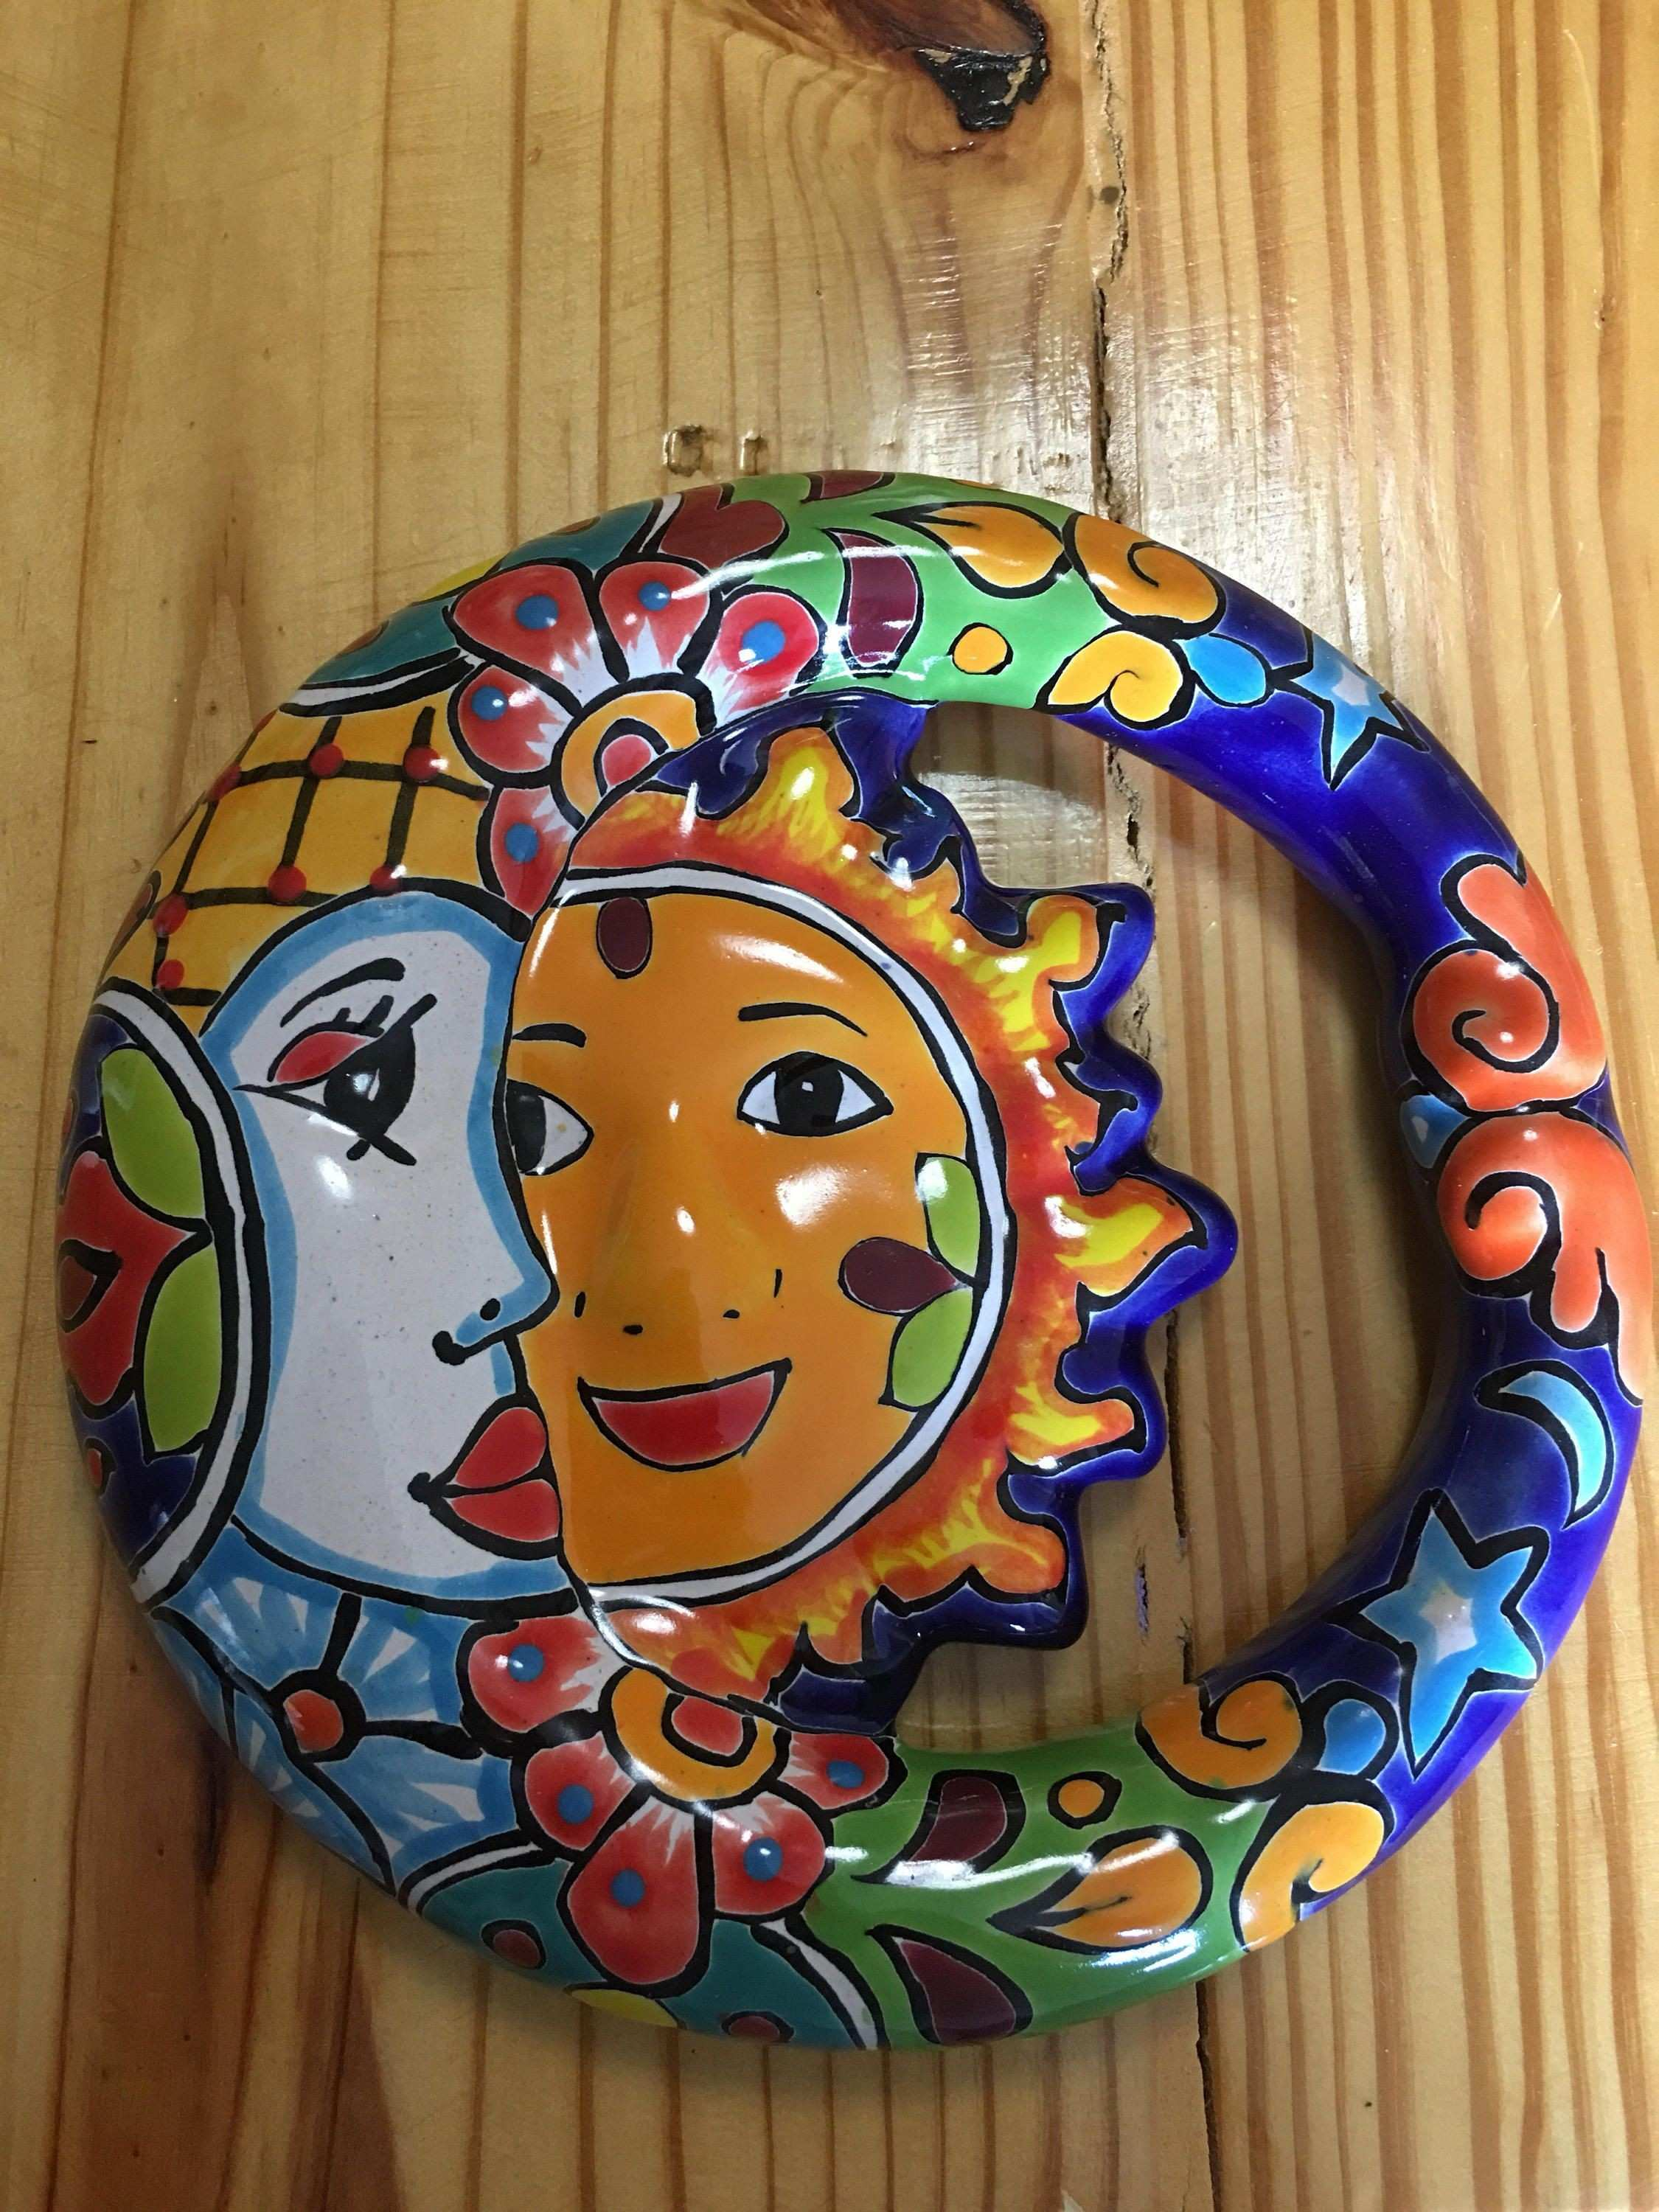 Talavera Wall Sun and Moon Talavera Eclipse Sun and Moon Design